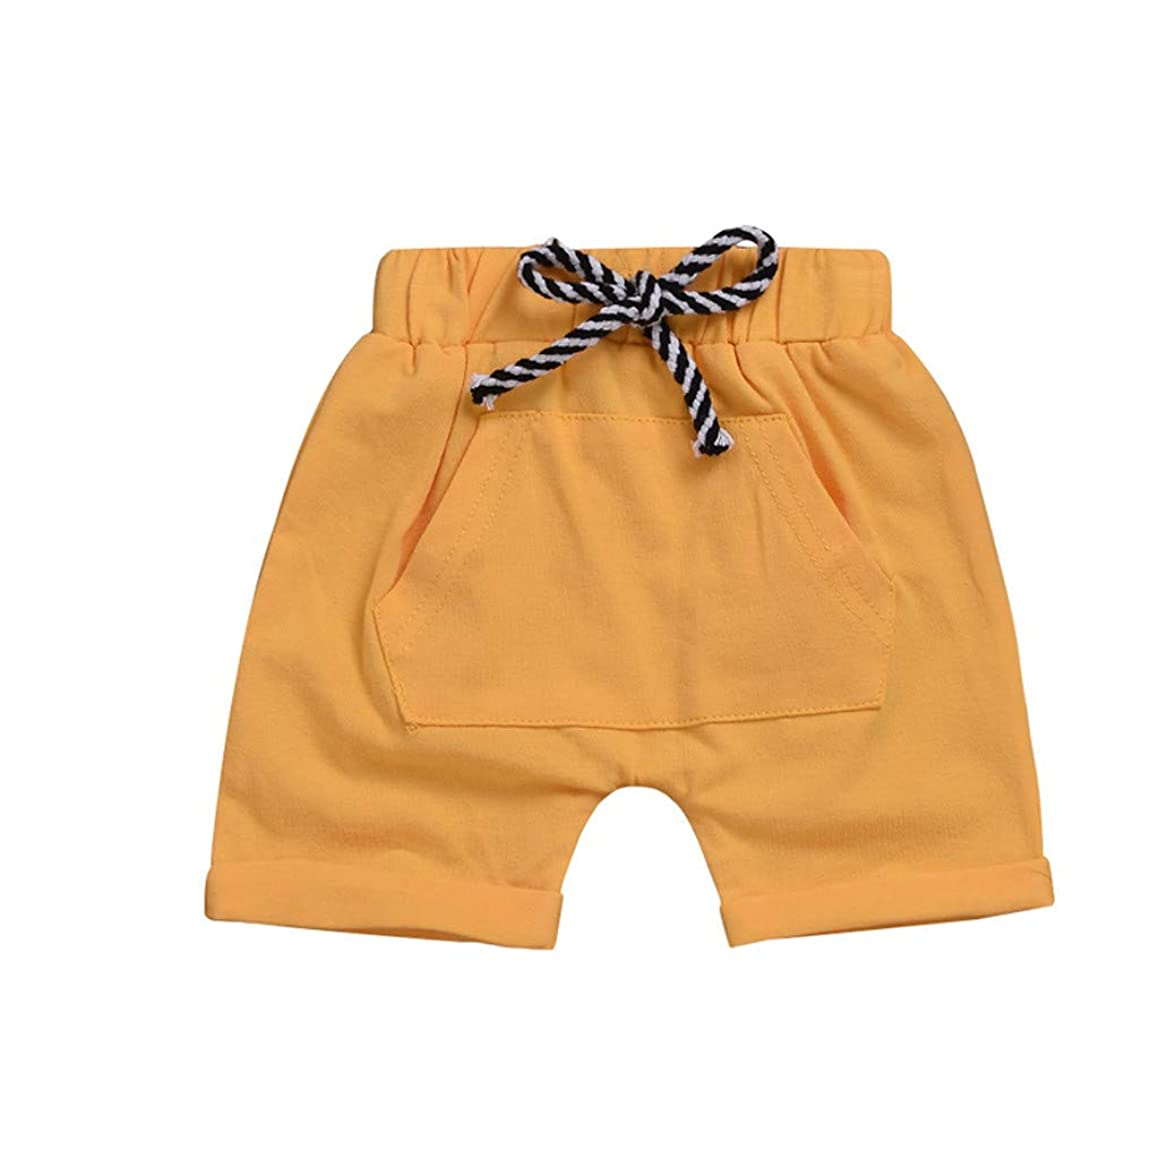 Dsood Baby Kids Boy Casual Shorts with Pockets Elastic Harem Pants Beachwear Outfits